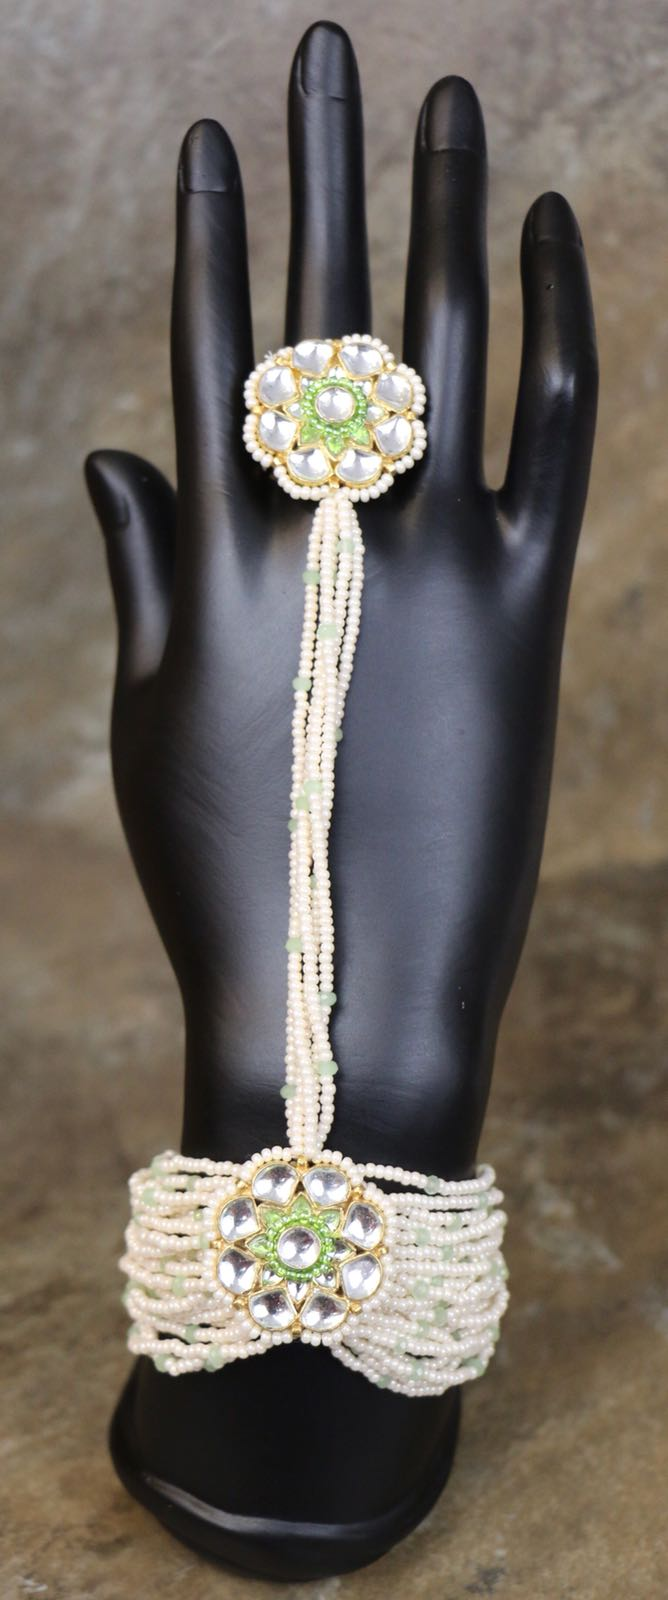 Kundan White & Green Colored Pearl Hand Bracelet with Ring